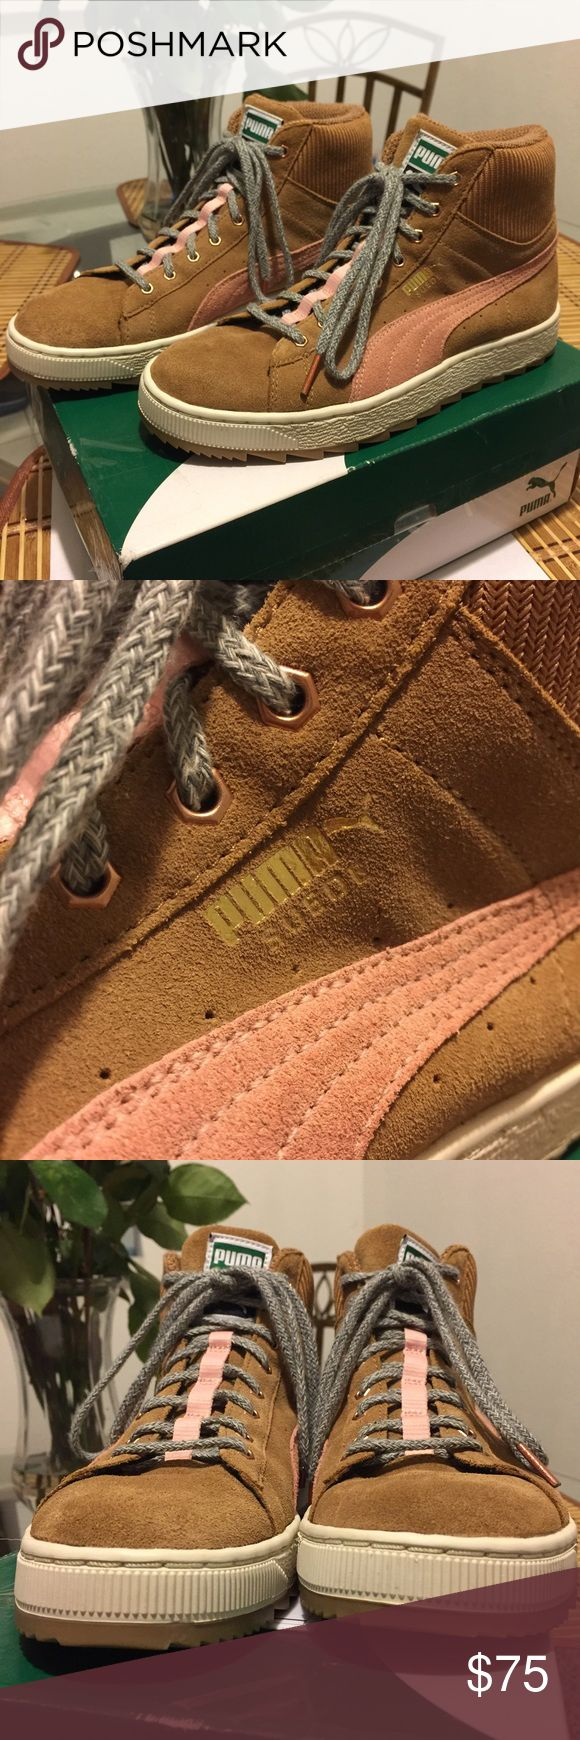 Puma Suede Winterized Rugged (Women's) Like new. Only worn a handful of times. Selling because I'm just not using it. Puma Shoes